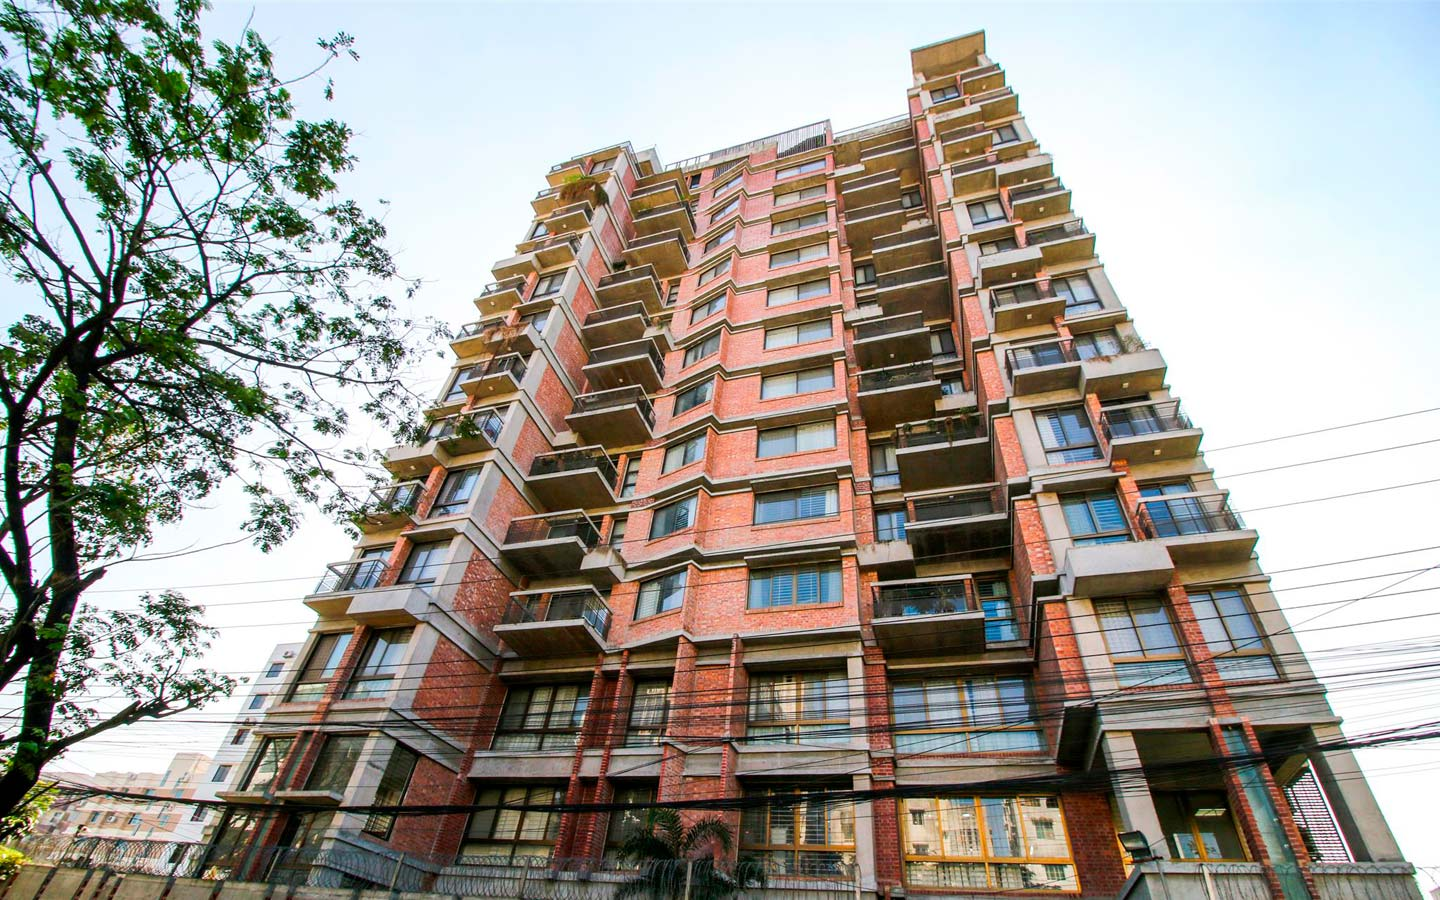 quality of an apartment depends on the structure first